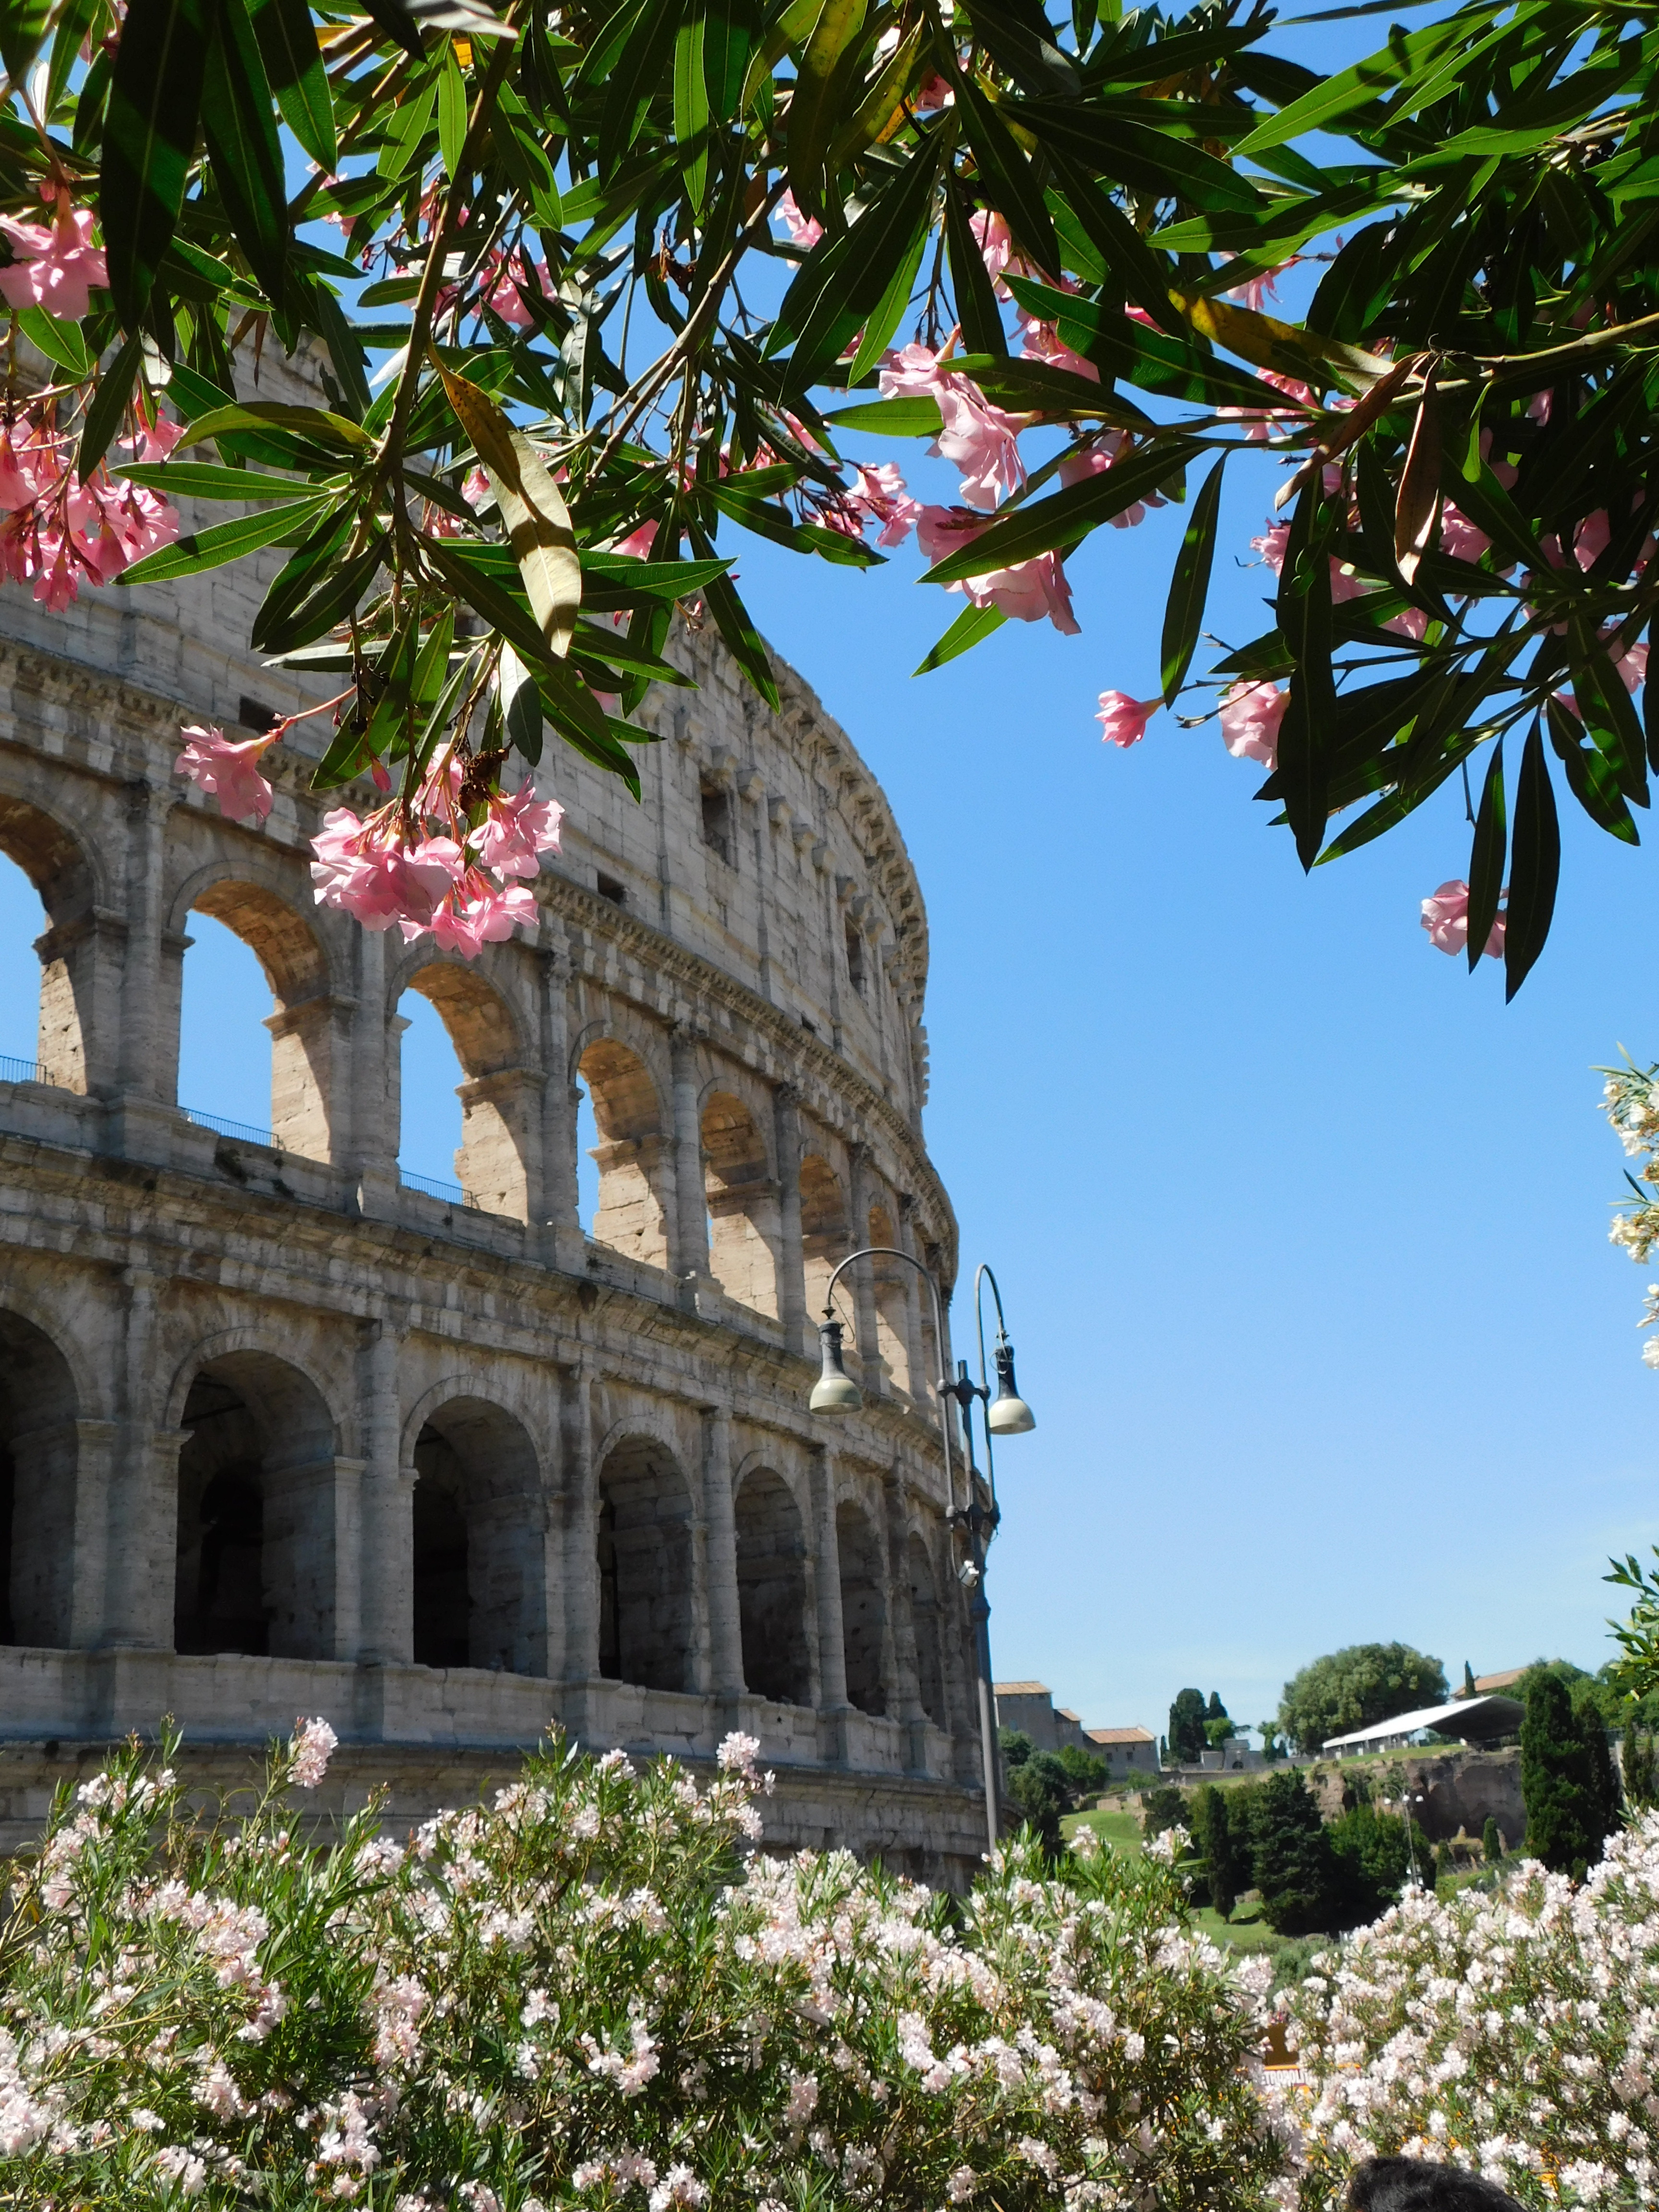 Nominated for the Versatile Blogger award - Travel - 10 reasons to visit Rome